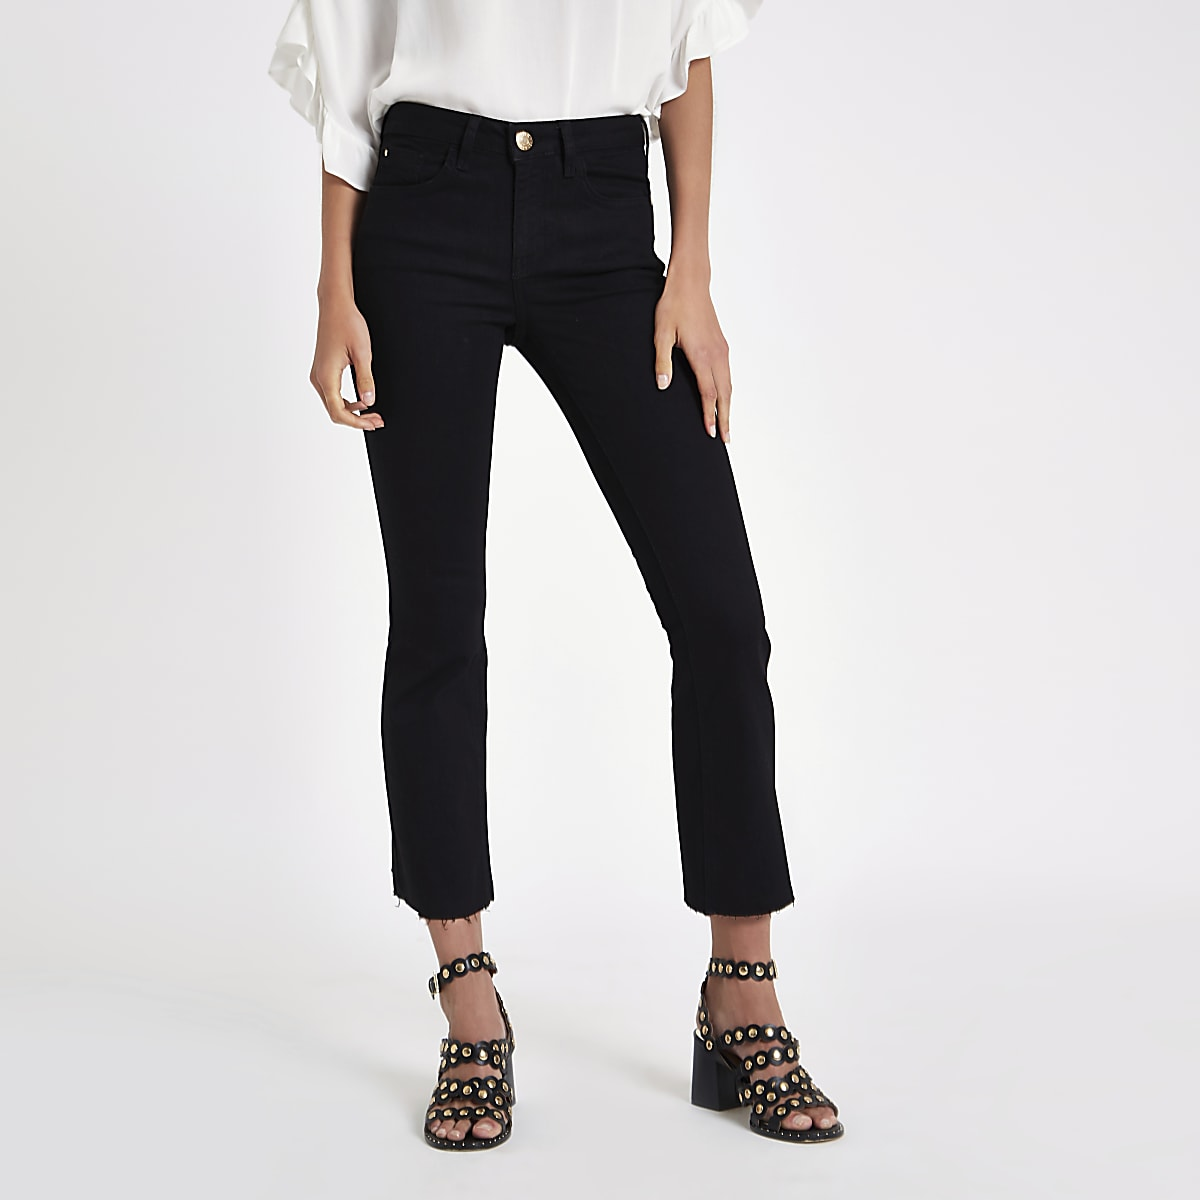 Black denim cropped flared jeans